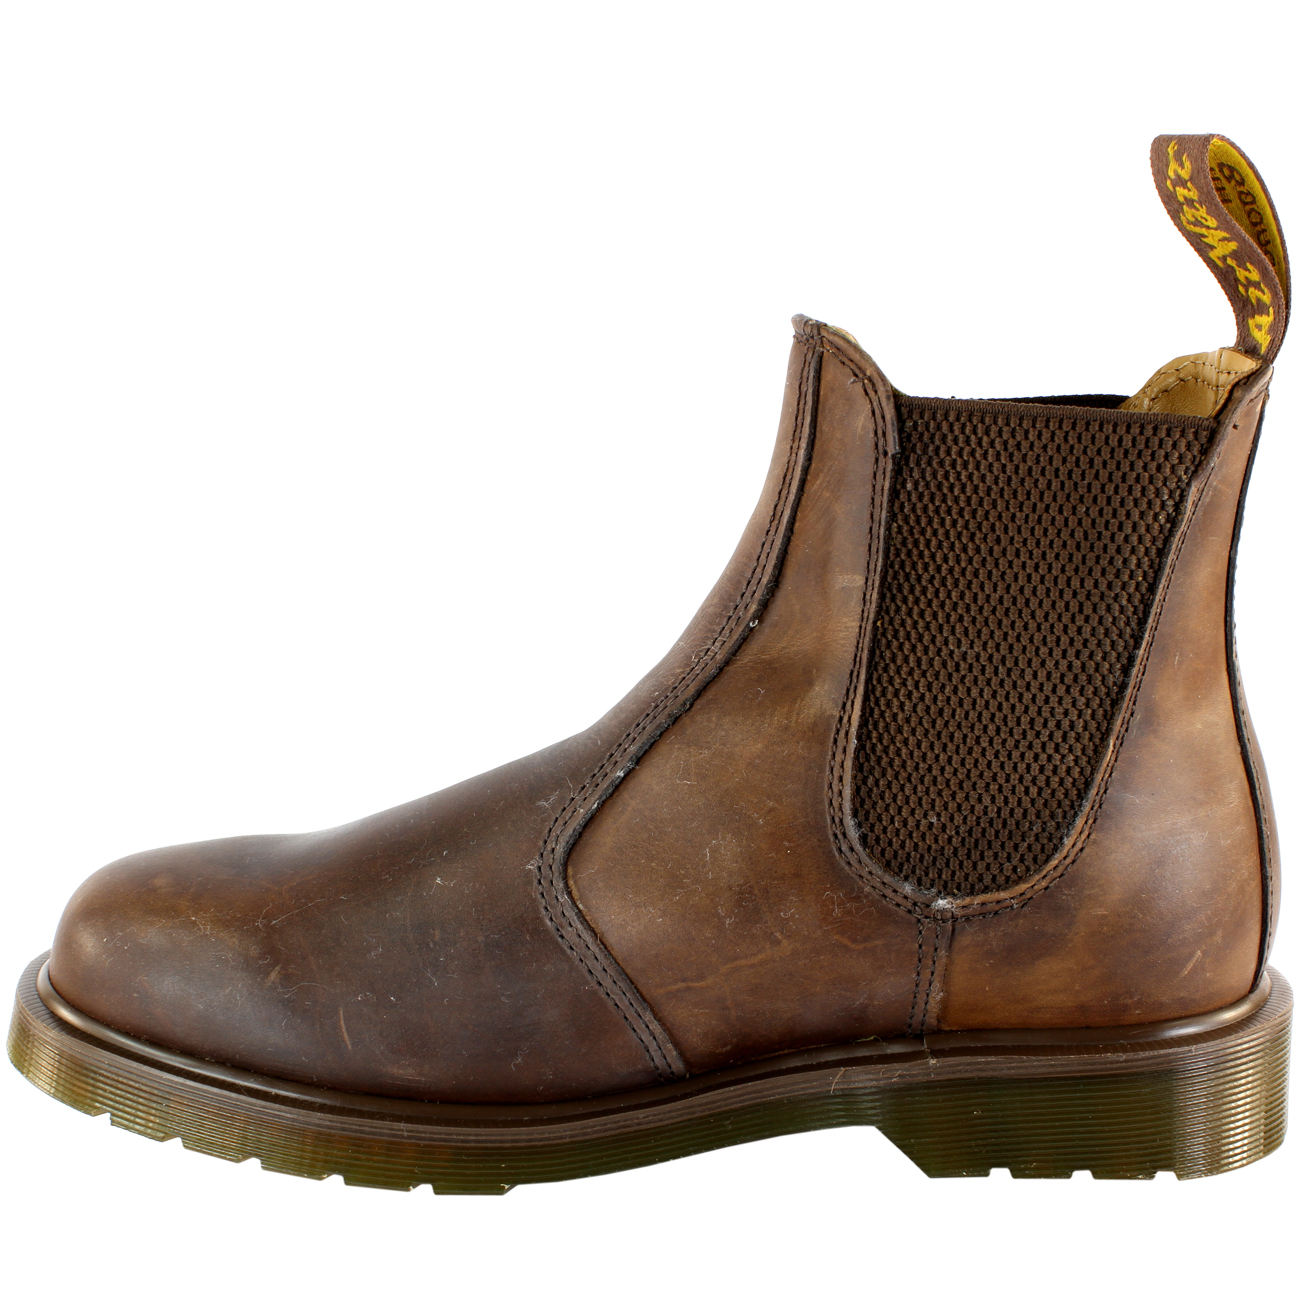 mens dr martens 2976 classic chelsea style leather ankle high boot uk sizes 7 12 ebay. Black Bedroom Furniture Sets. Home Design Ideas